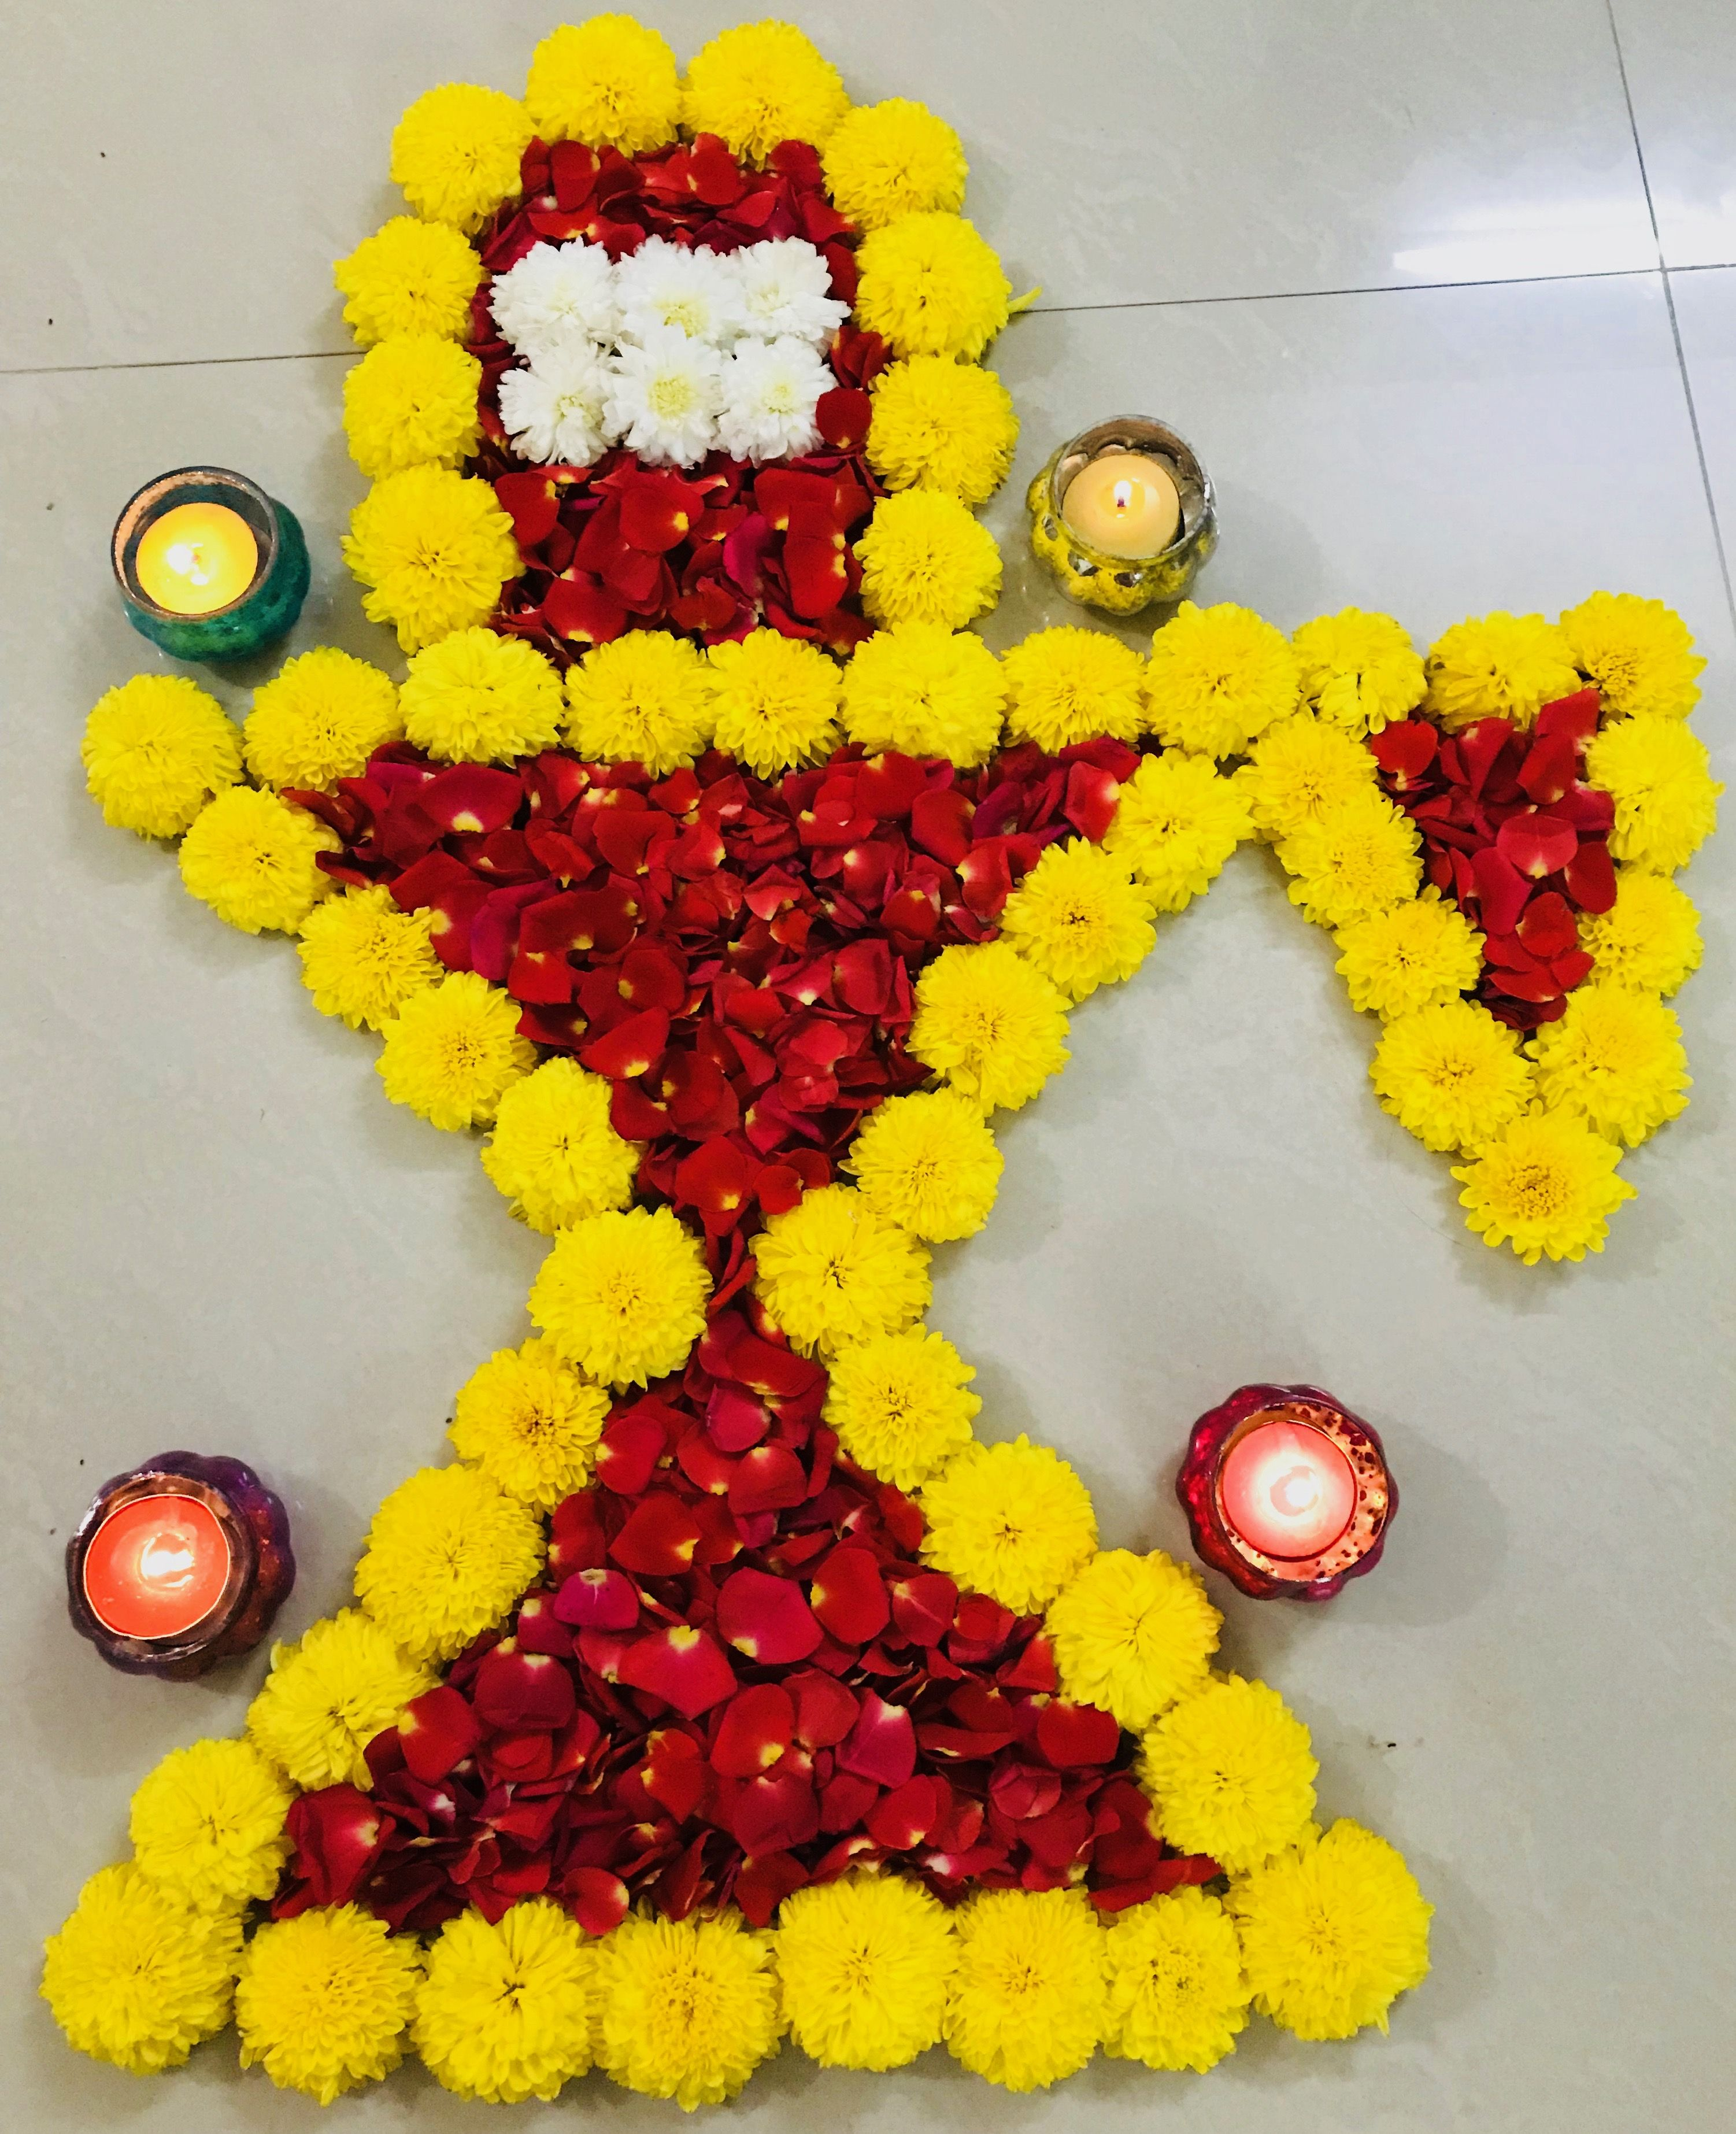 Lord Shivling Made Of Beautiful Flowers Decorations Pinterest